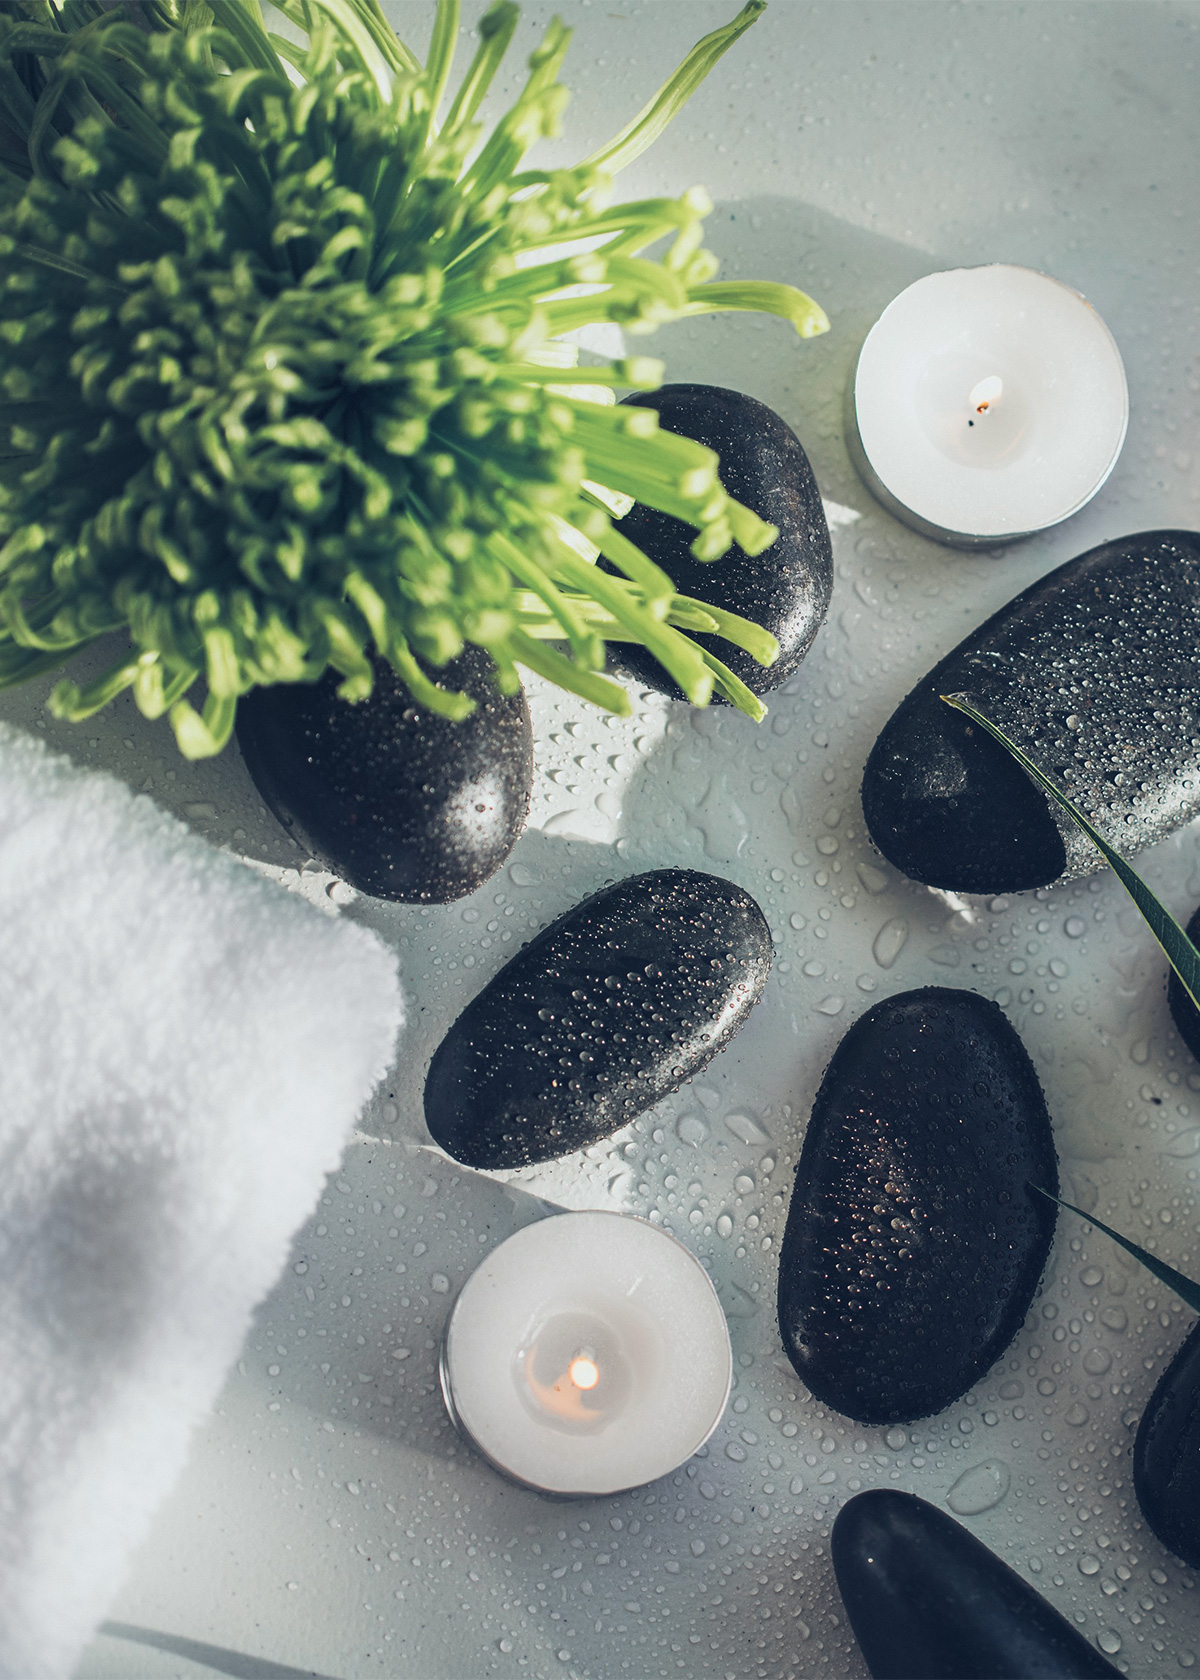 Melt Day Spa - Melt Spa + Massage is a contemporary North Fort Worth/Keller day spa offering facials, massage and waxing services, performed by skilled and licensed therapists and aestheticians in an inviting, relaxing environment.